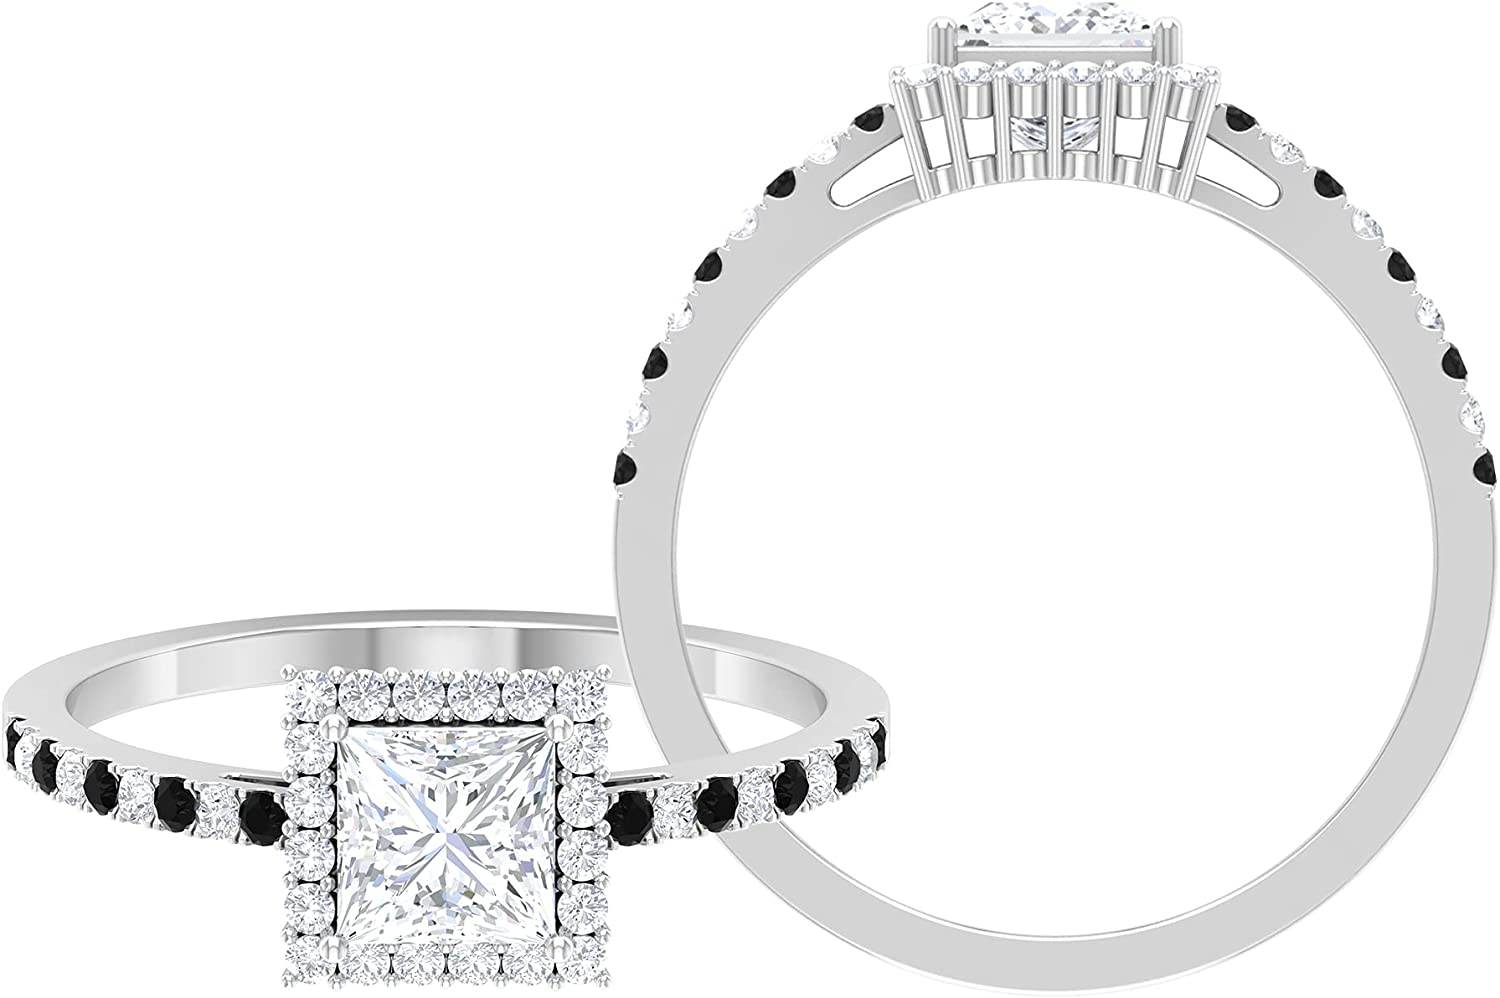 April Birthstone Long Beach Mall - 1 CT Princess Cut Diamond and Attention brand Black Solitaire